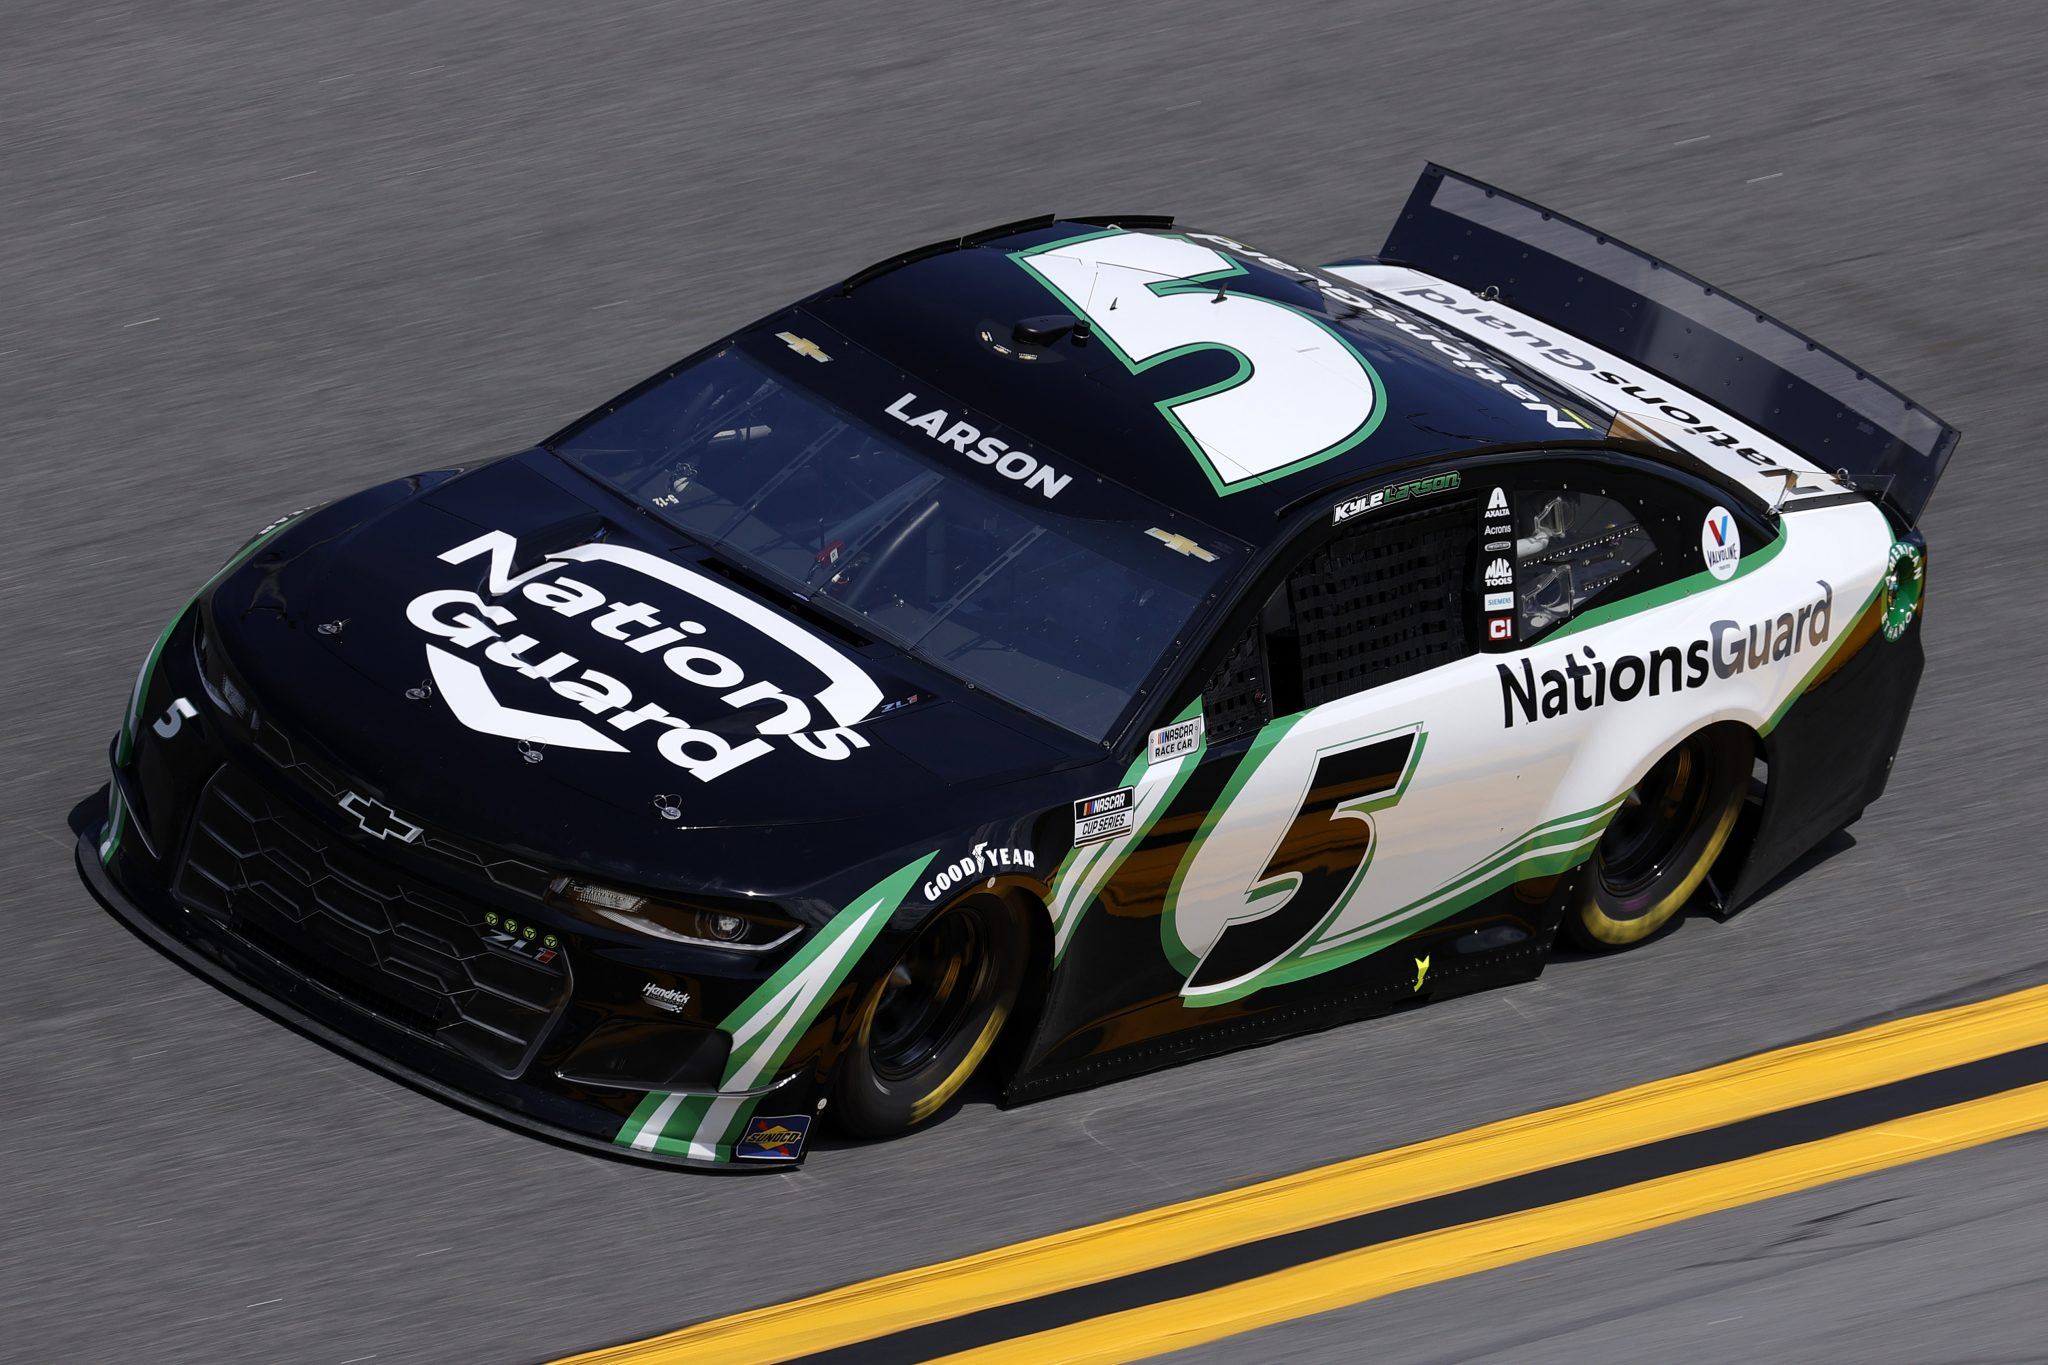 DAYTONA BEACH, FLORIDA - FEBRUARY 10: Kyle Larson, driver of the #23 National Guard Chevrolet, drives during practice for the NASCAR Cup Series 63rd Annual Daytona 500 at Daytona International Speedway on February 10, 2021 in Daytona Beach, Florida. (Photo by Jared C. Tilton/Getty Images) | Getty Images